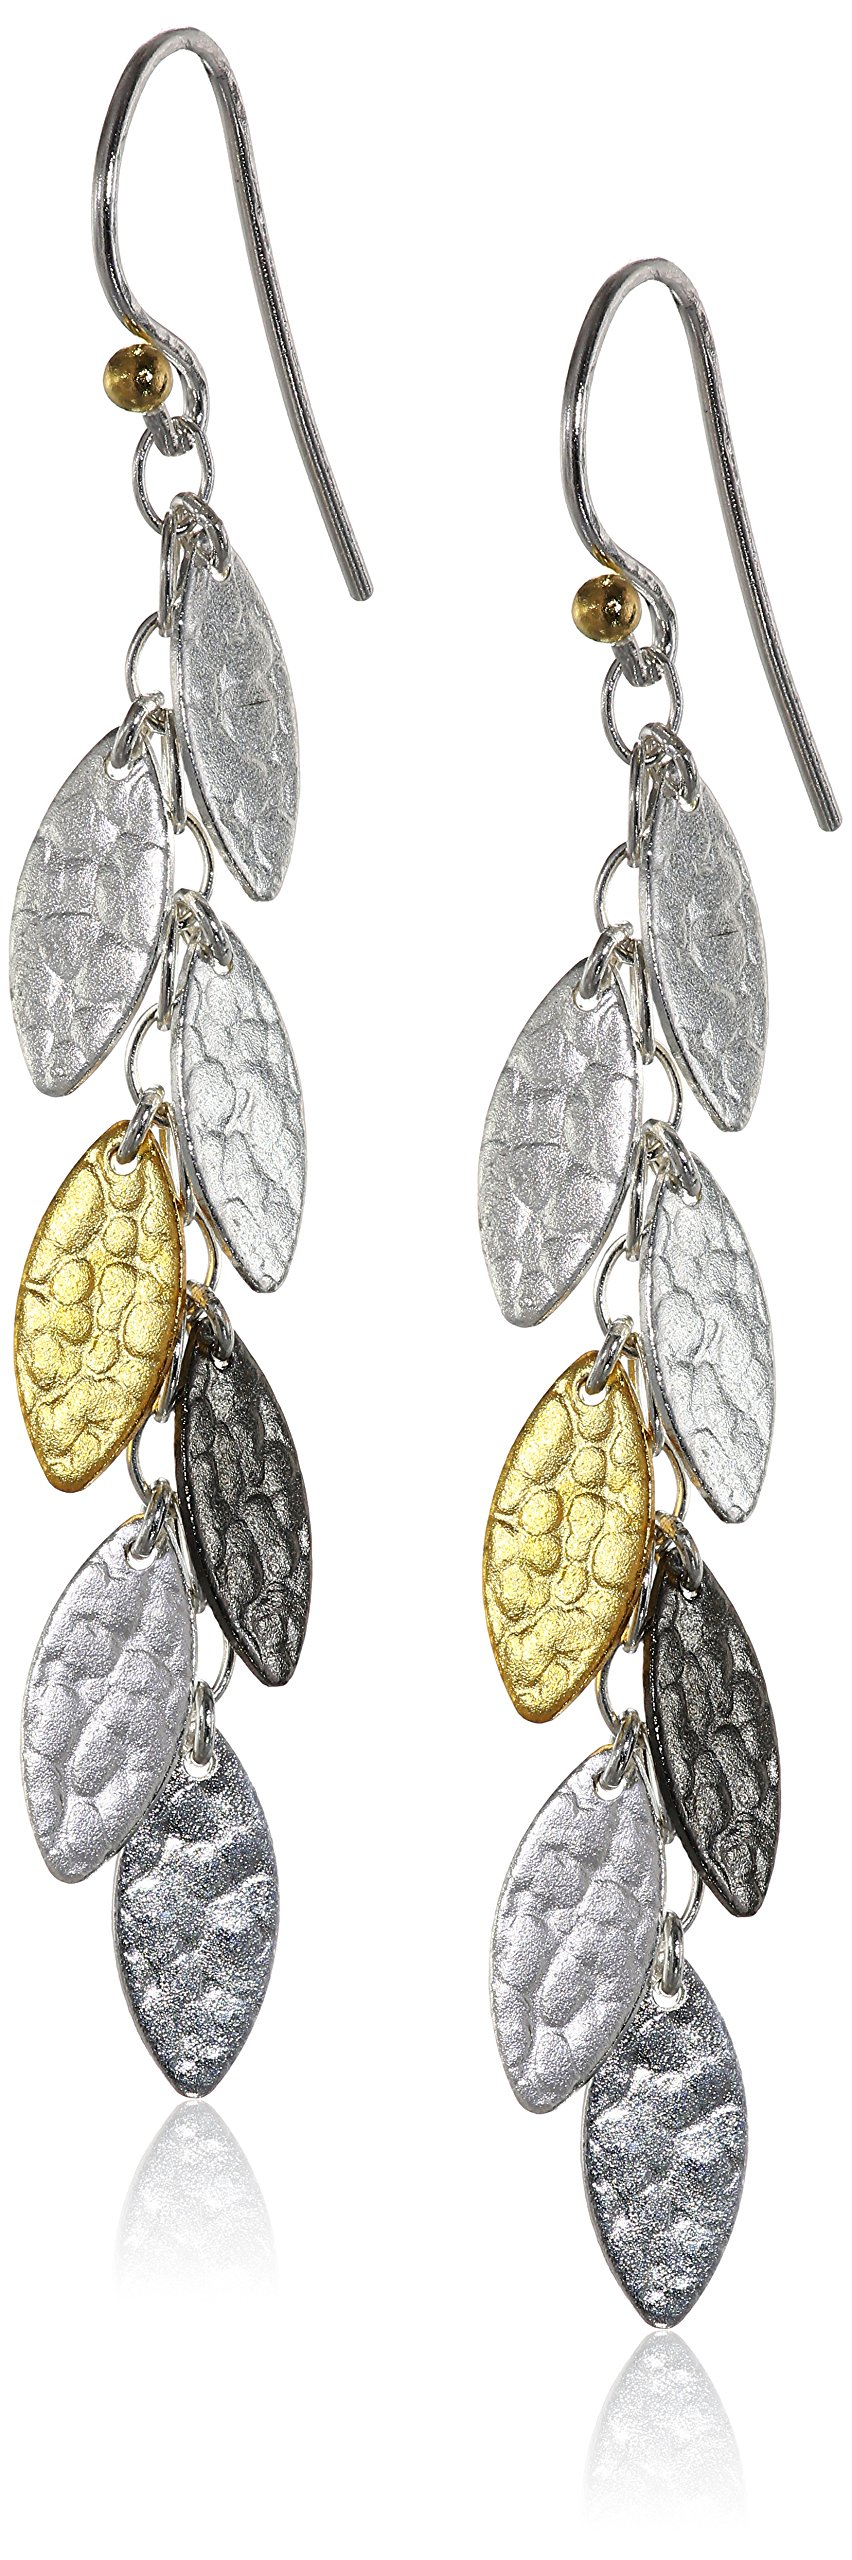 GURHAN ''Willow Mini'' Sterling Silver Hook Earrings